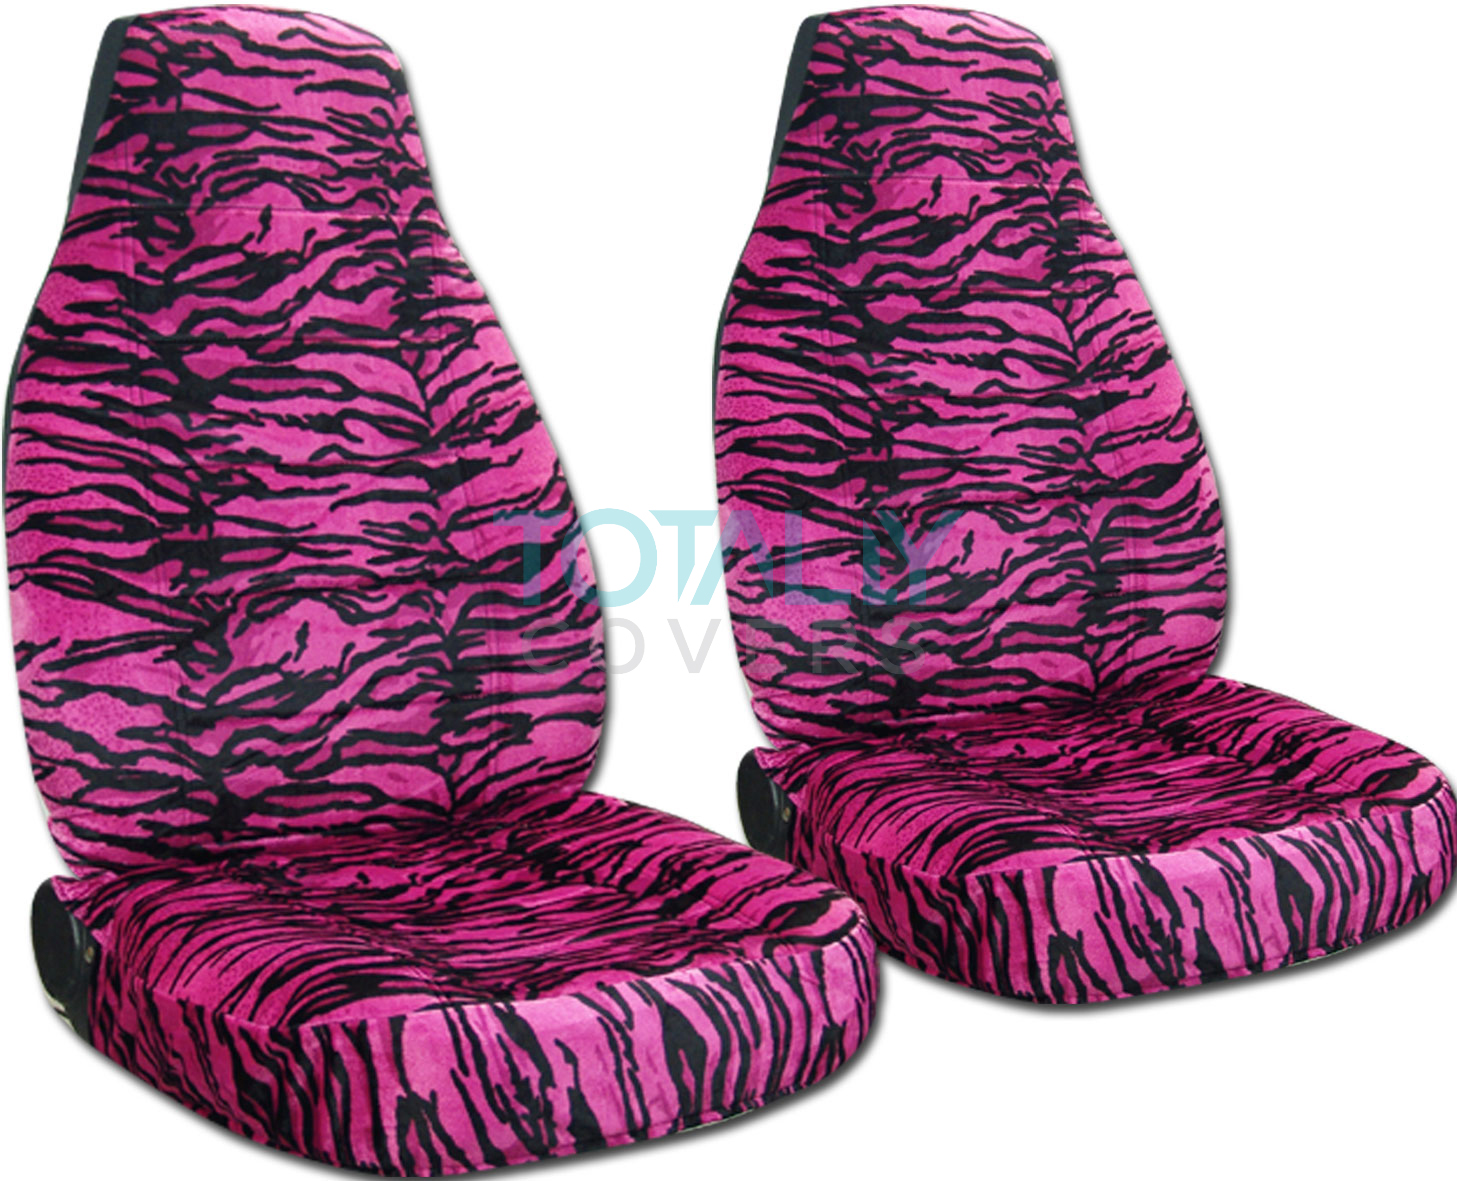 Pink Leopard Print Car Seat Covers Uk - Velcromag